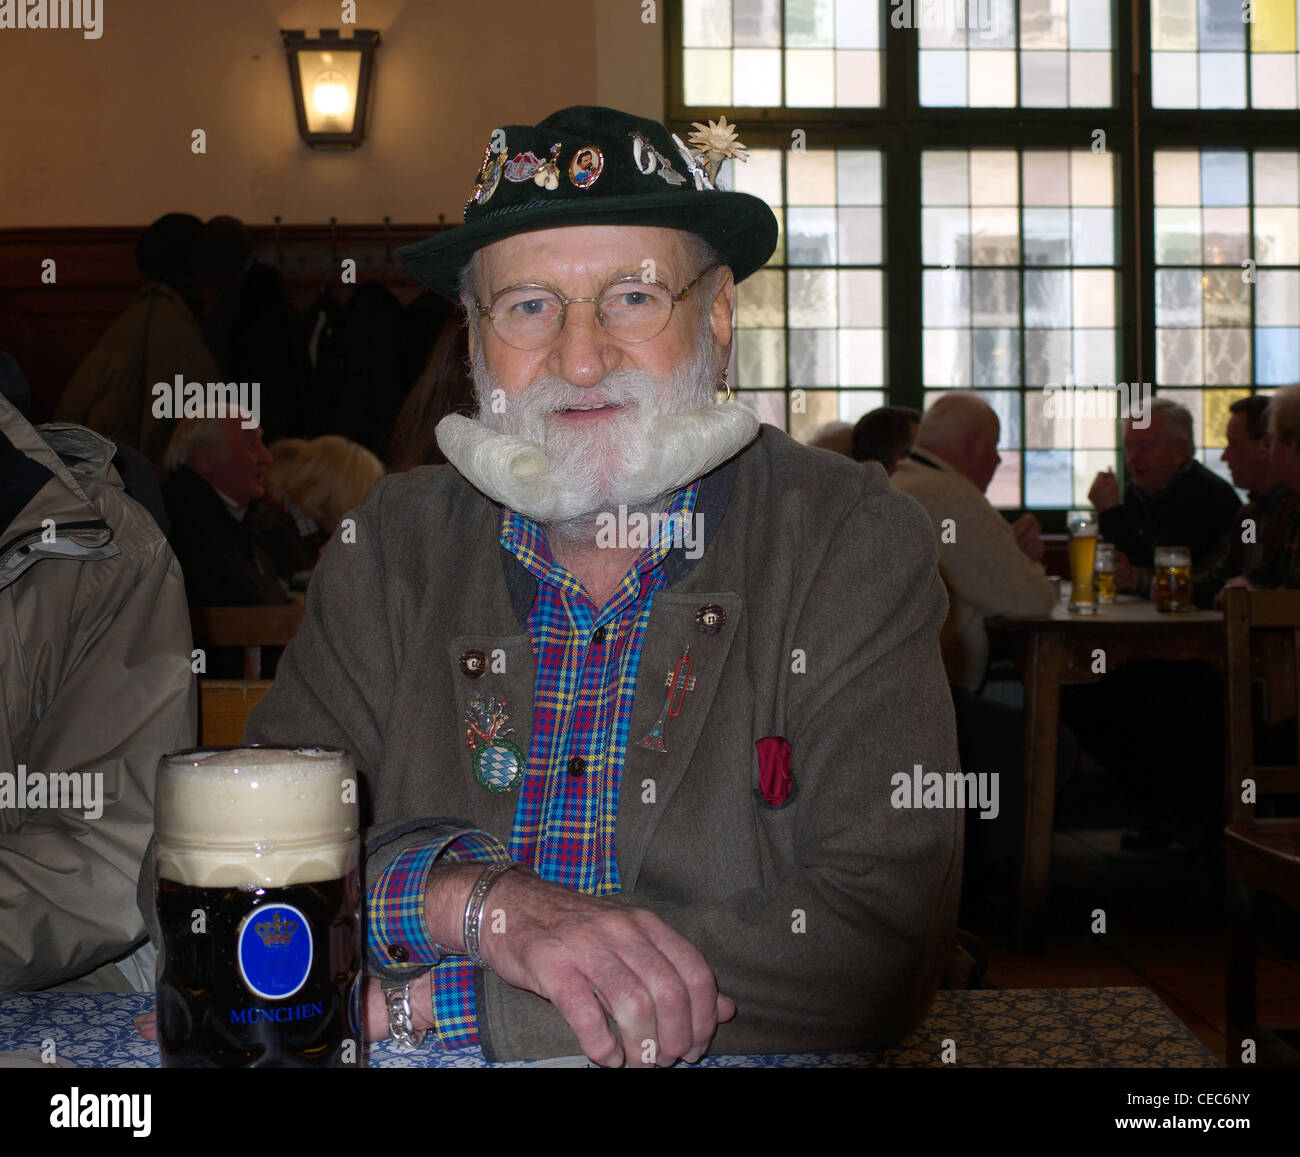 Typical Bavarian local in Hofbräuhaus drinking beer - Stock Image